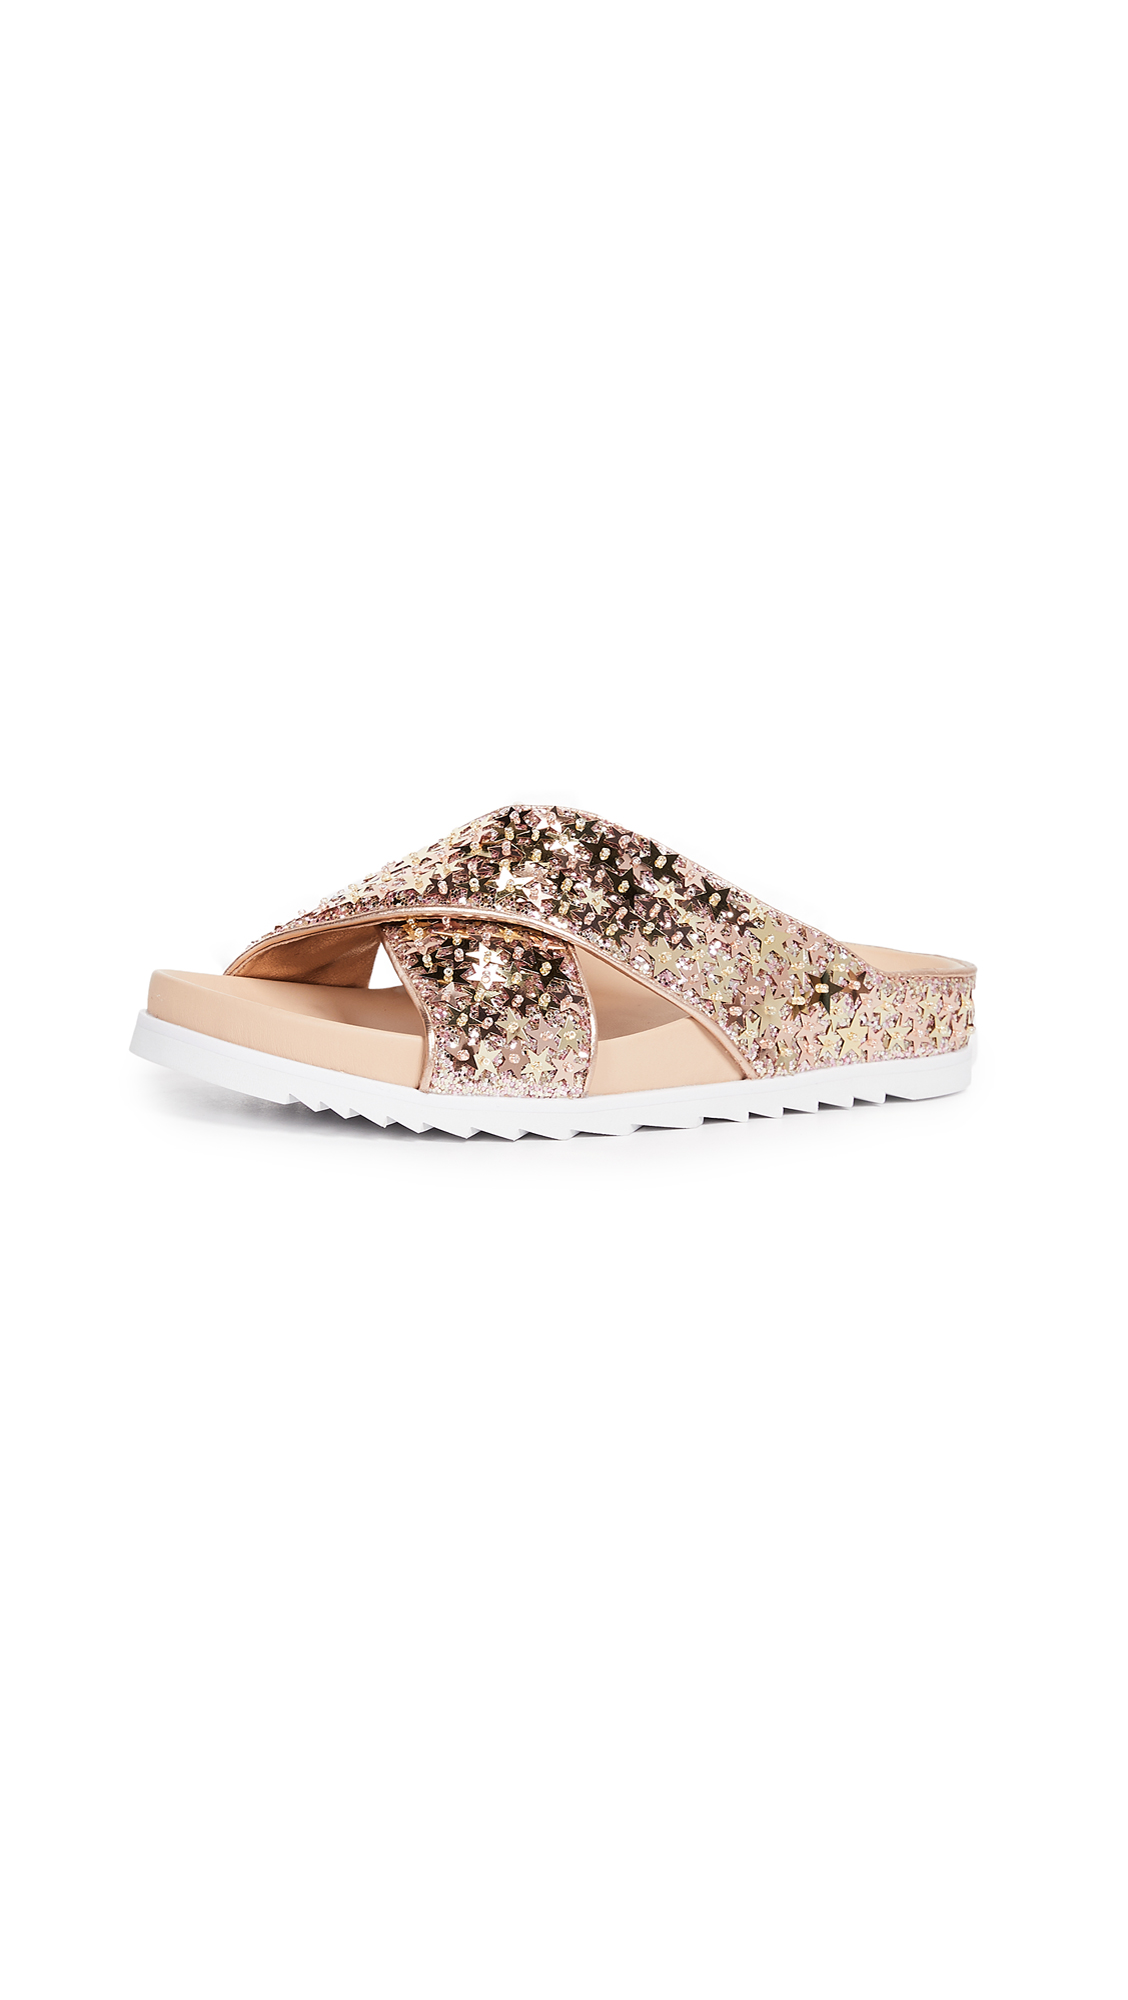 Ash Uranus Crisscross Slides - Blush/Rose Gold/Platine